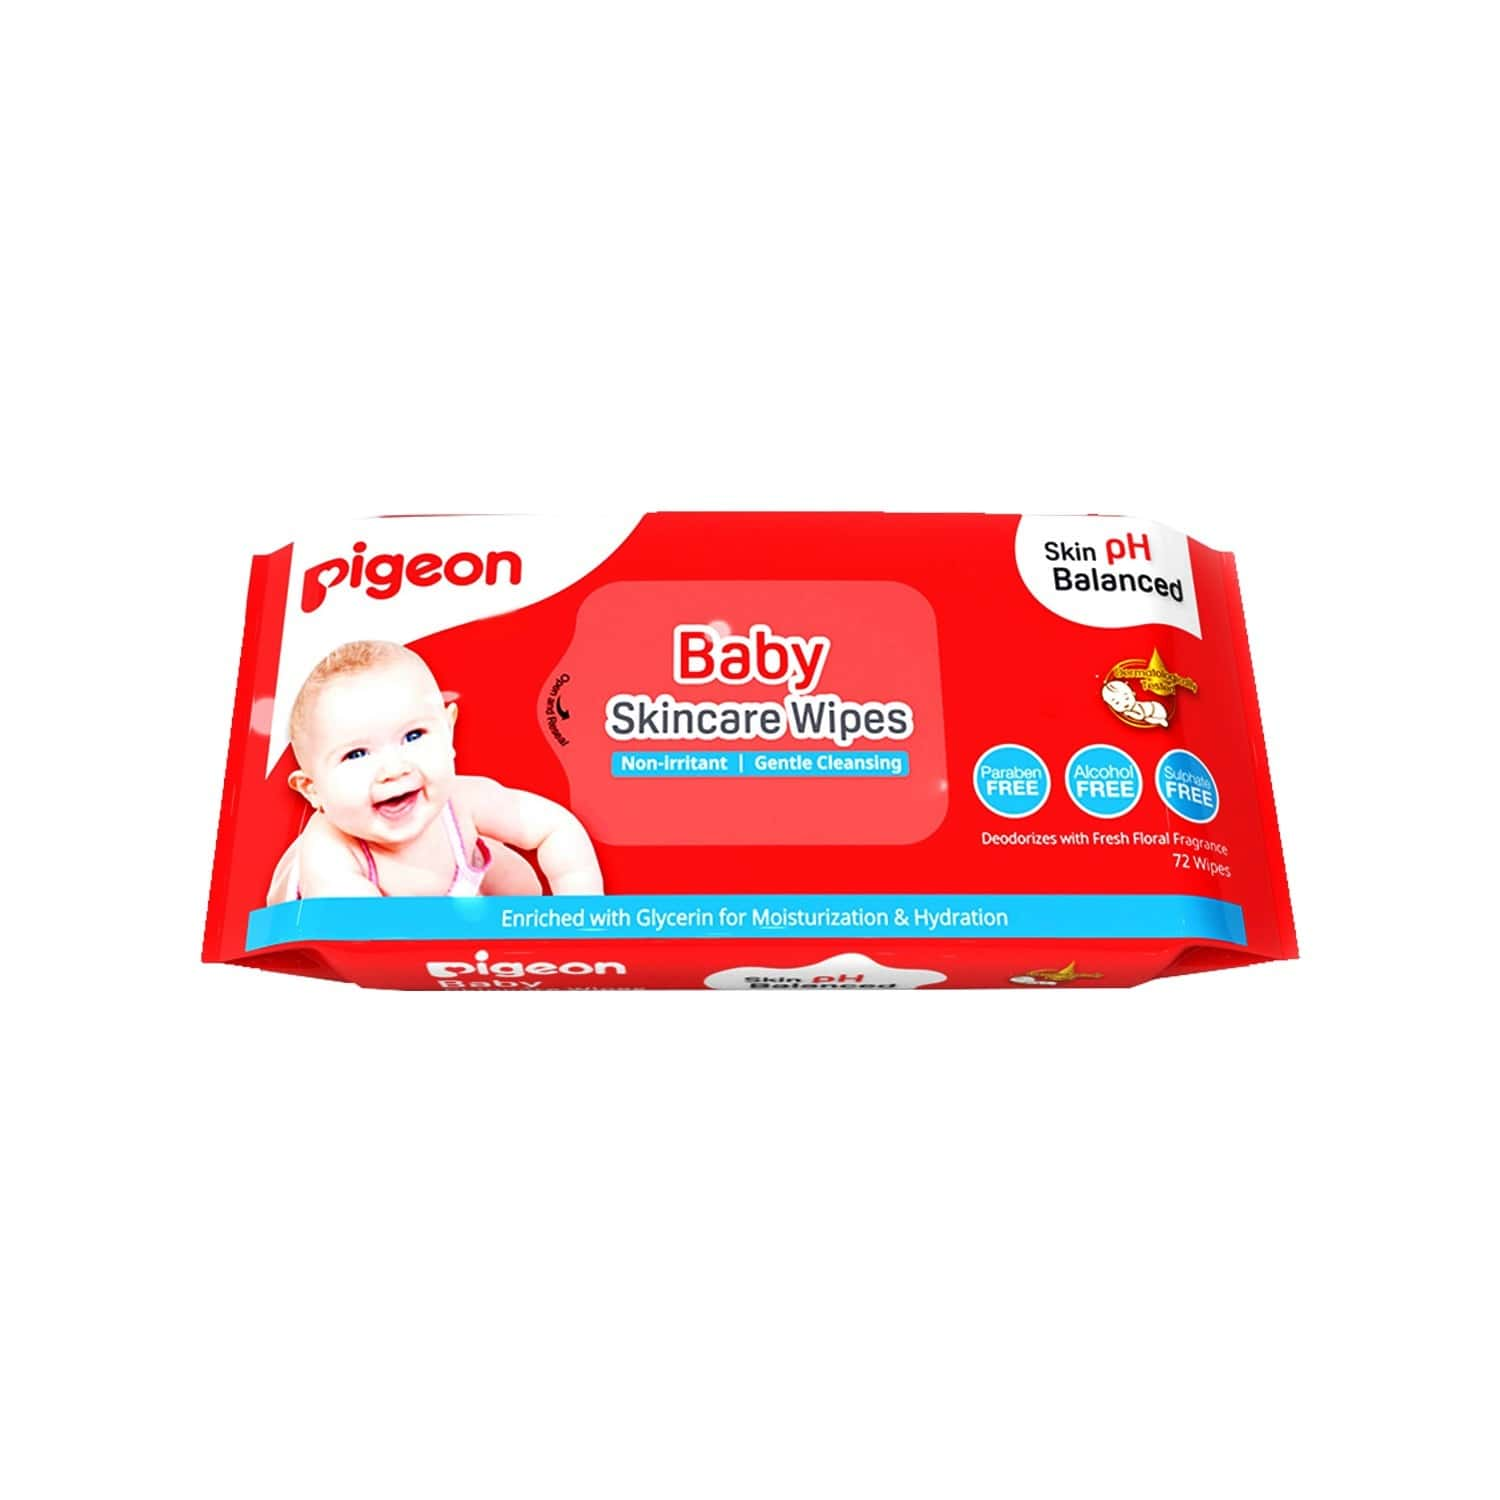 Pigeon Baby Skincare Wipes - 72 Sheets